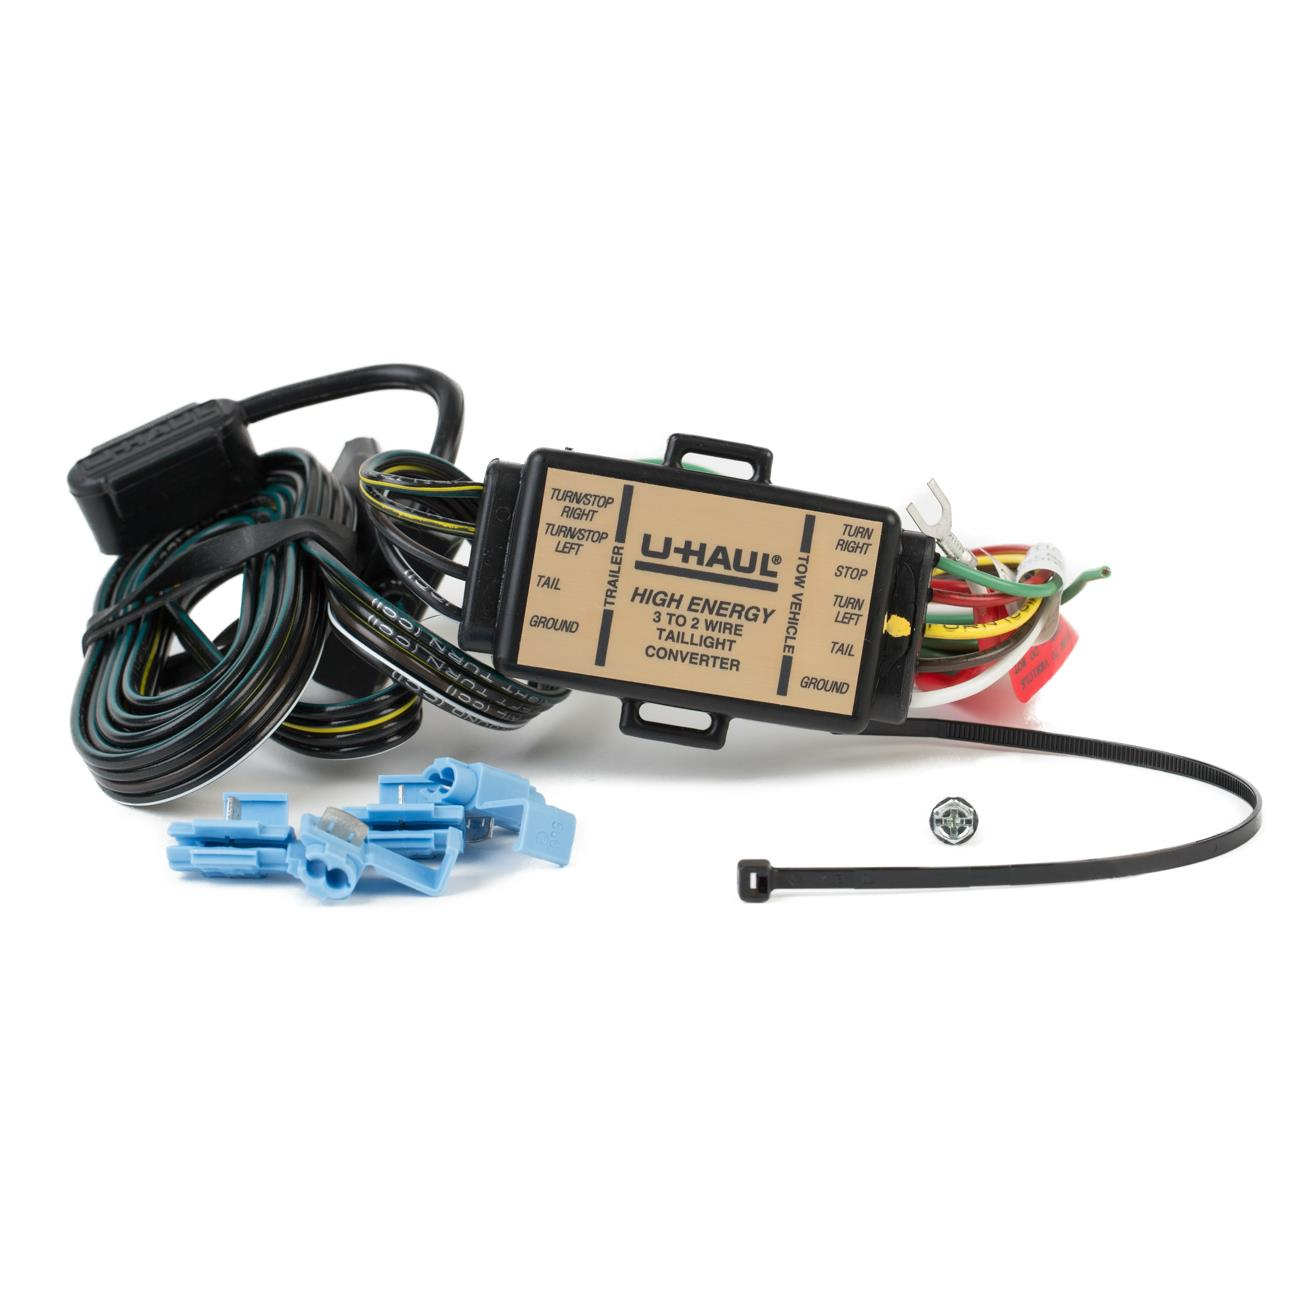 Wiring & Lights Tow Vehicle Wiring · 14486 Instructions